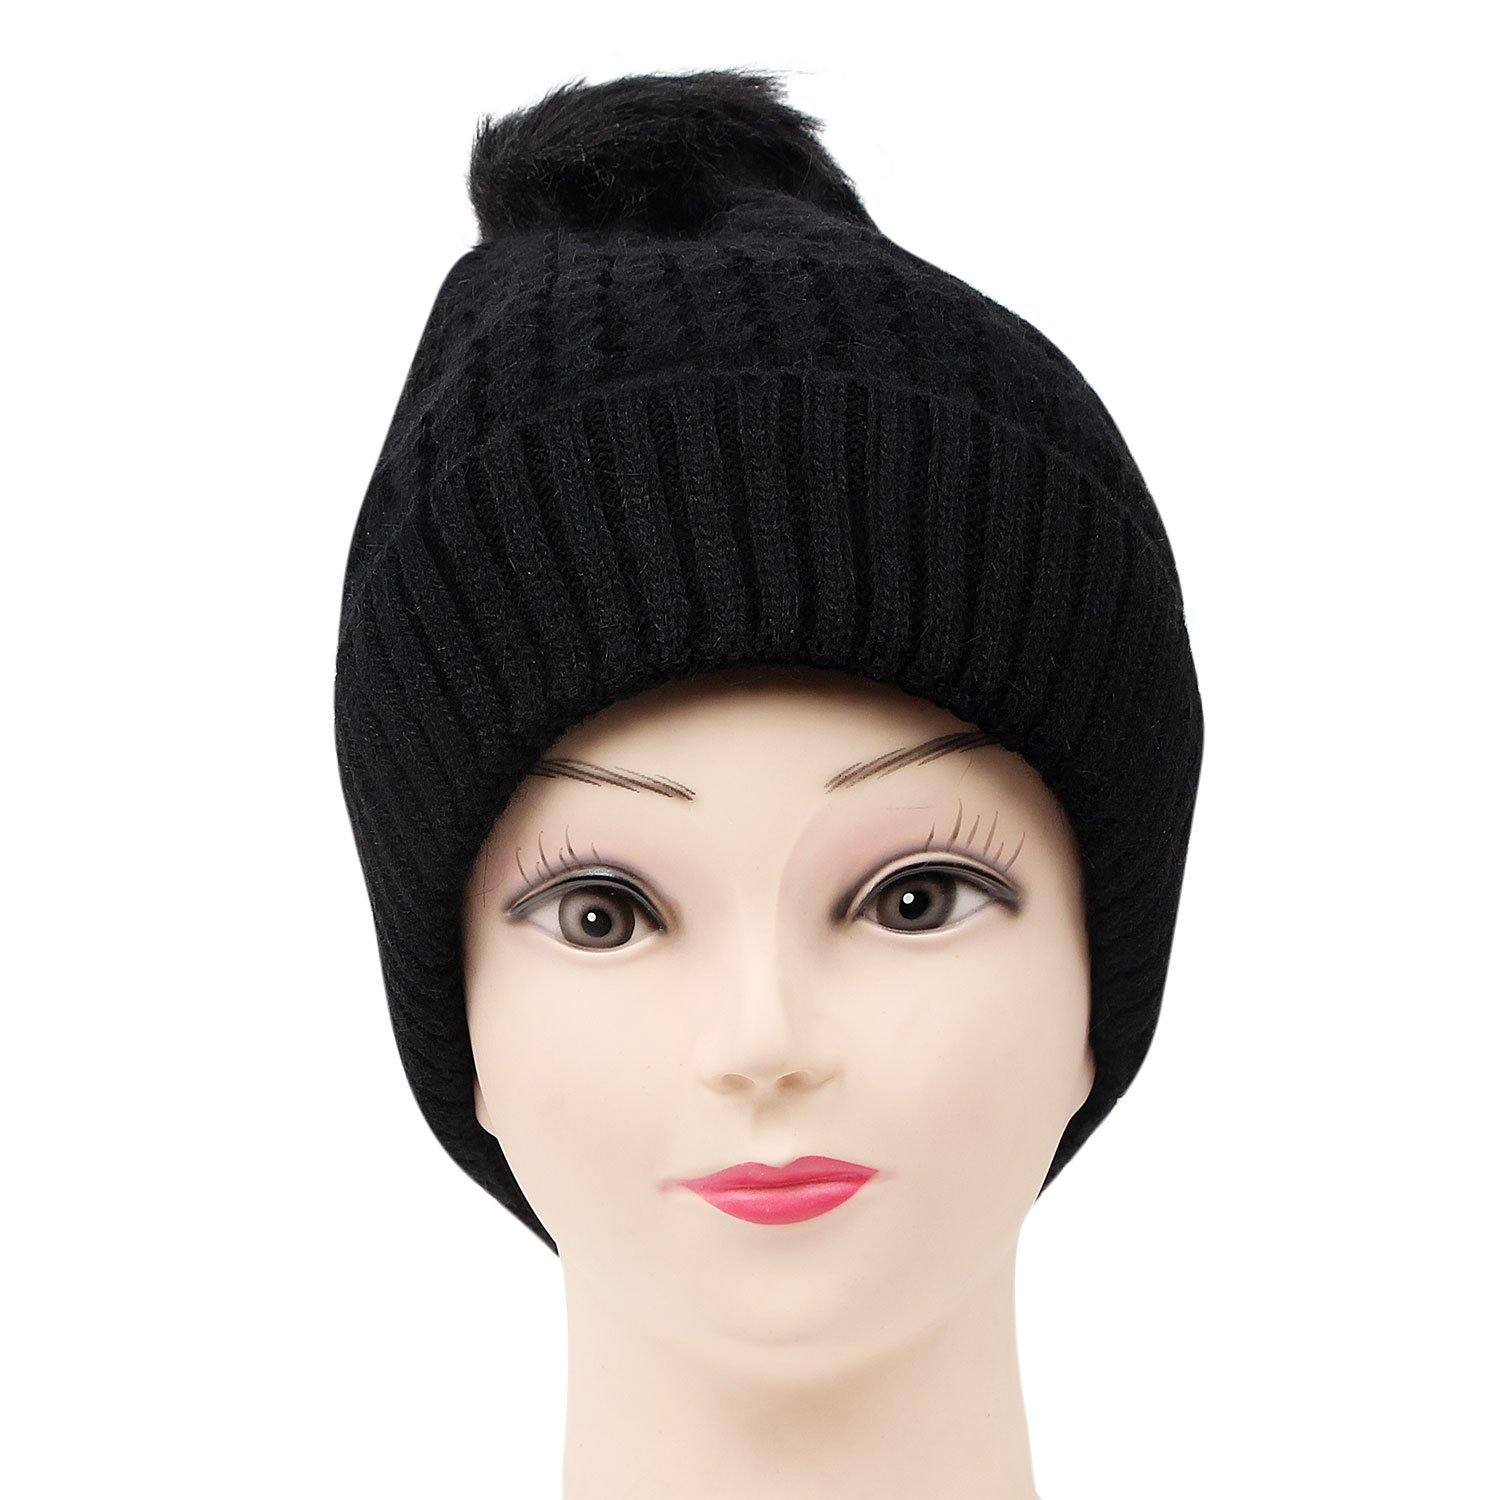 Woolen Cap with Pom Pom For Women